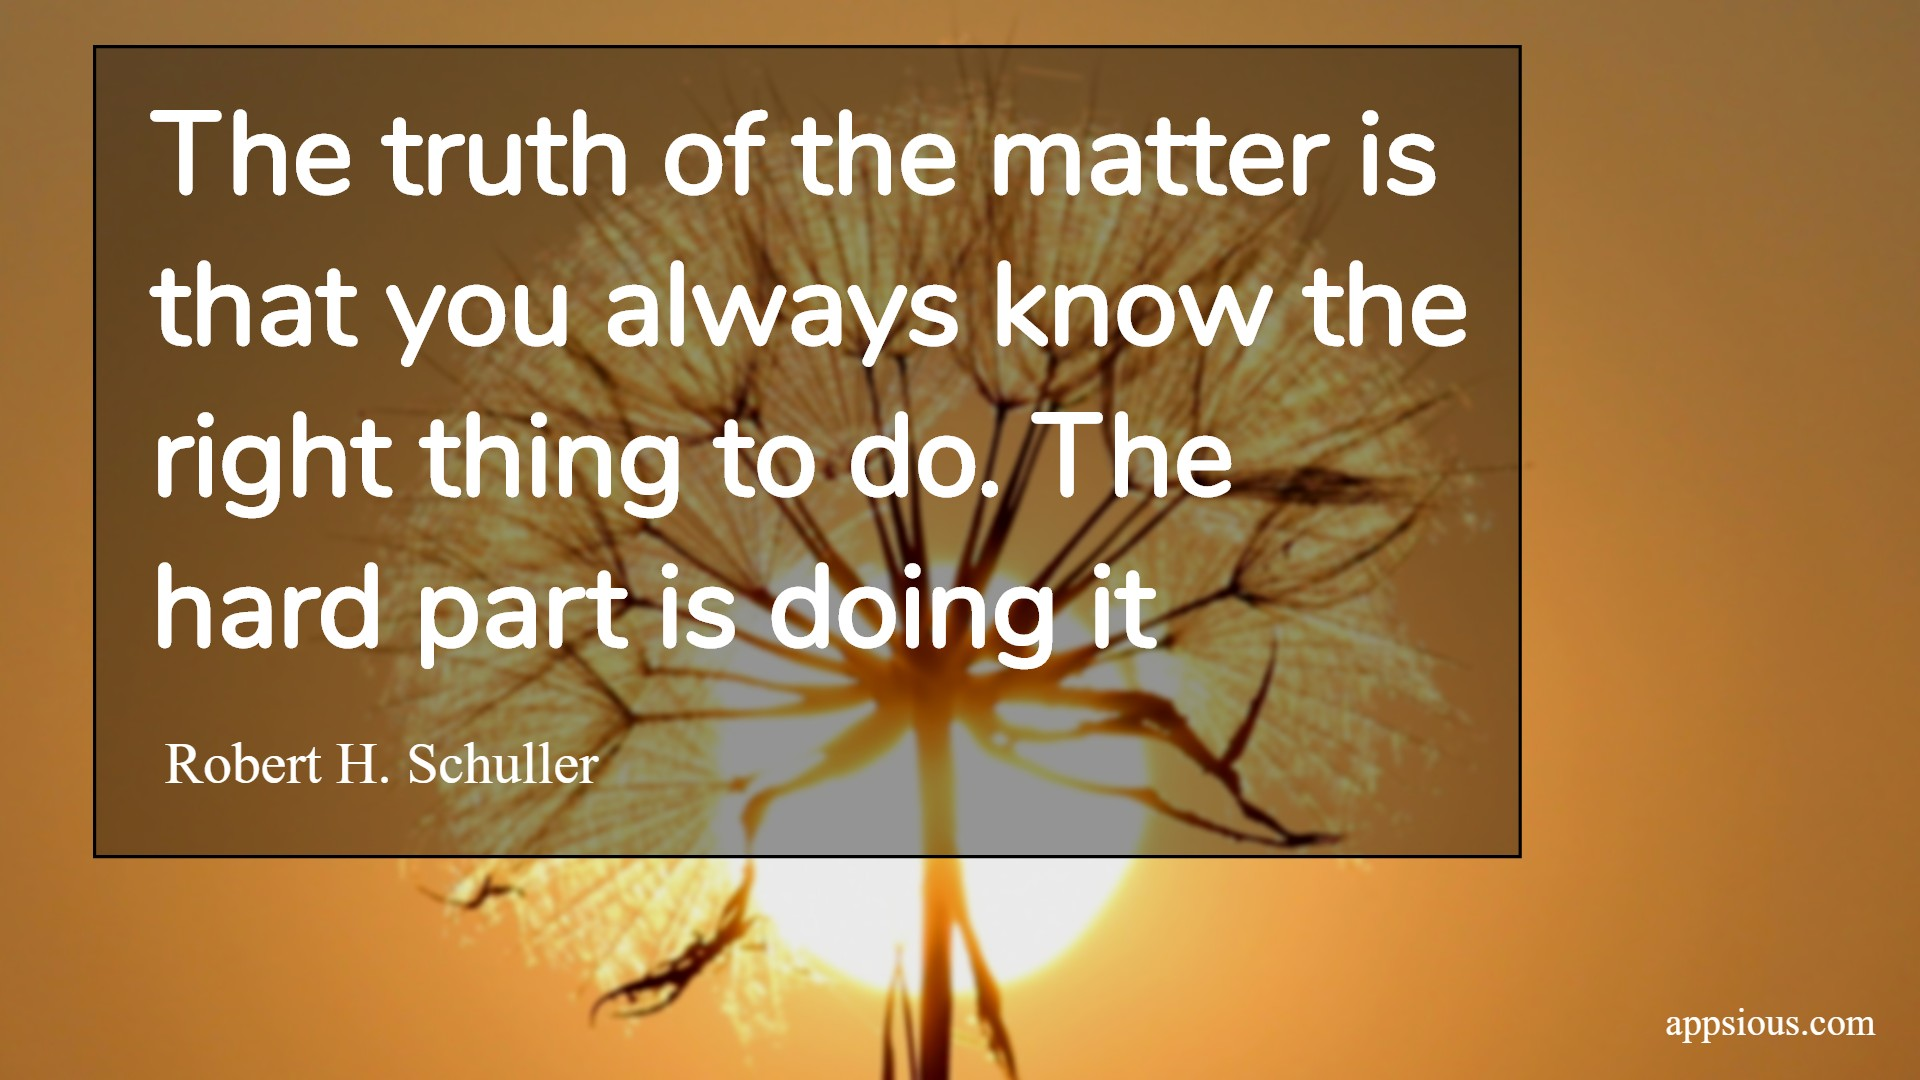 The truth of the matter is that you always know the right thing to do. The hard part is doing it